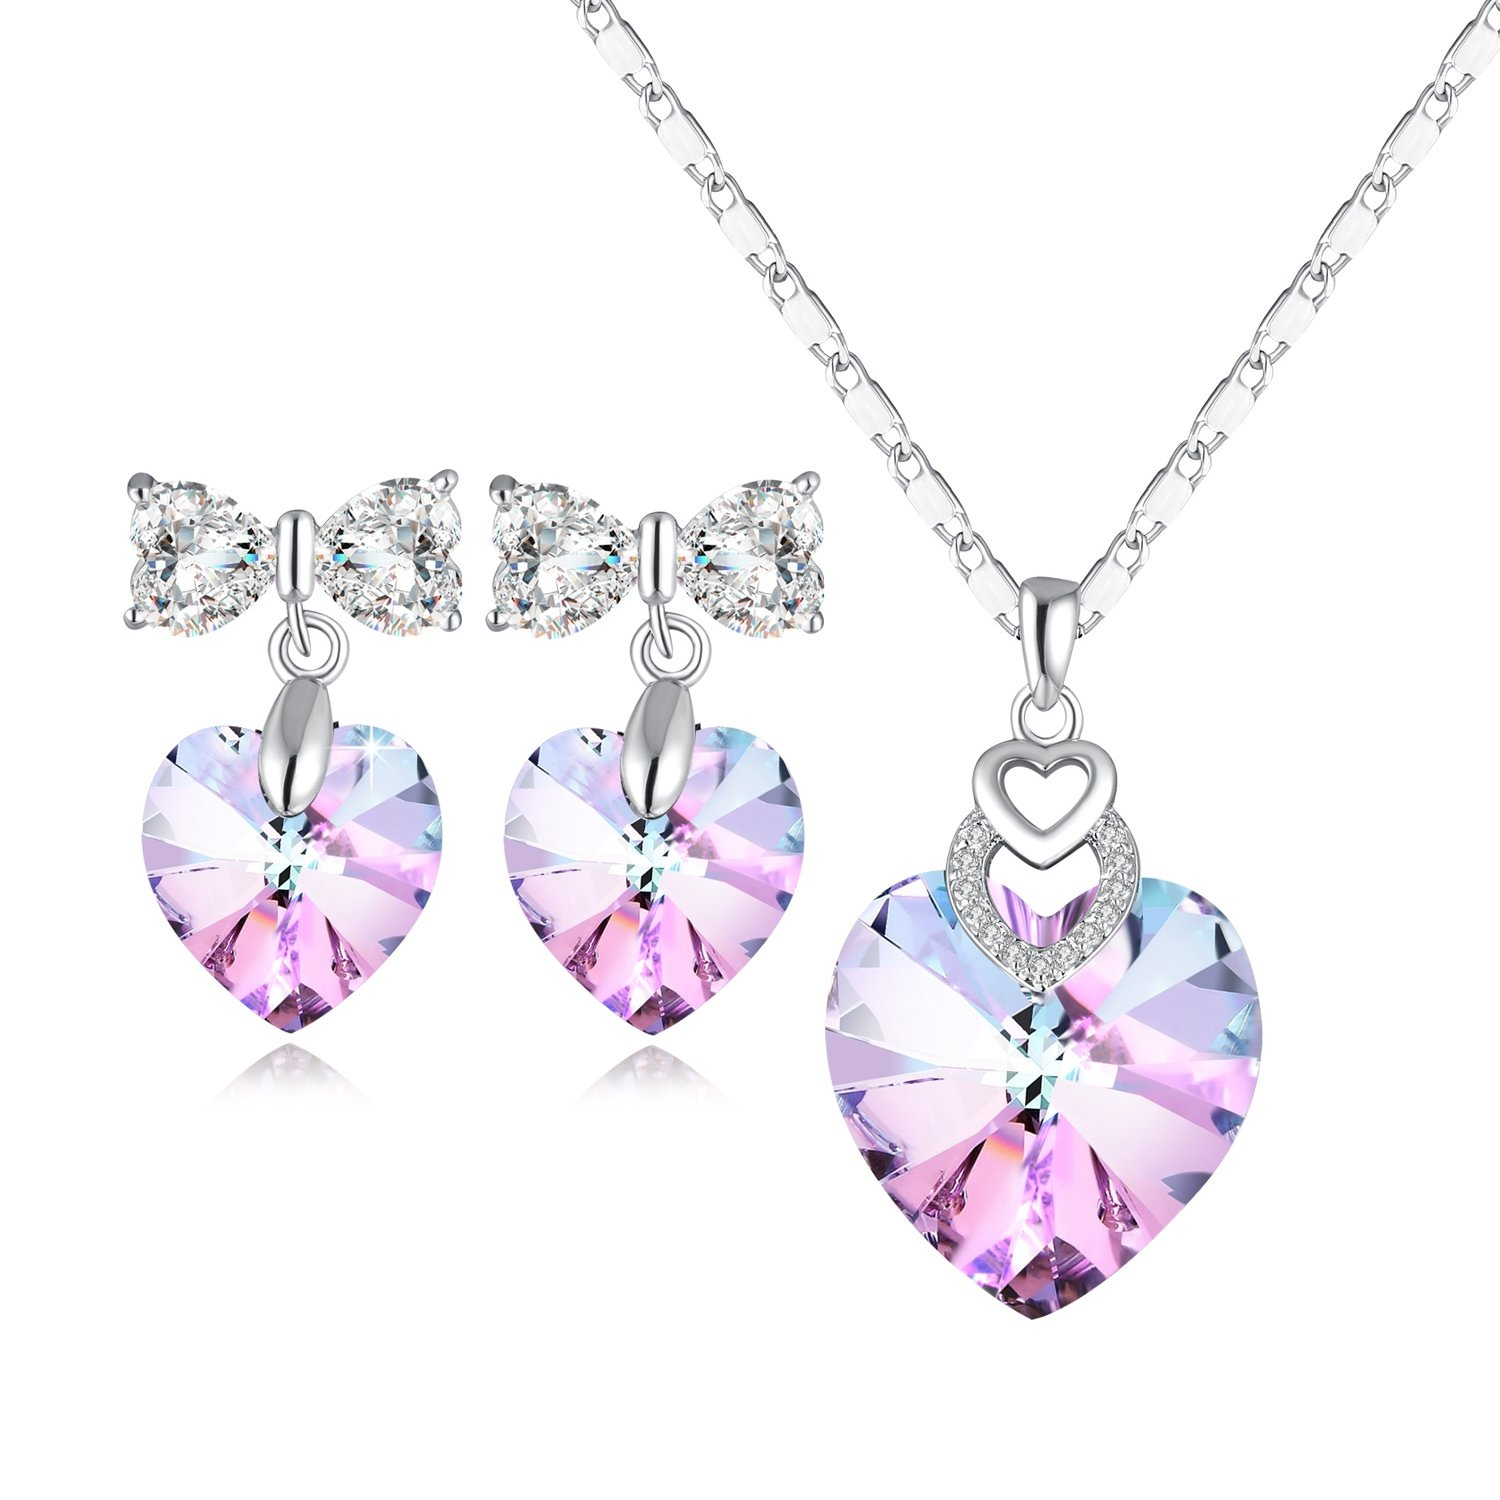 PLATO H Gift For Mom Brave Heart Pendant Necklace & Earrings Jewelry Set with Swarovski Crystals